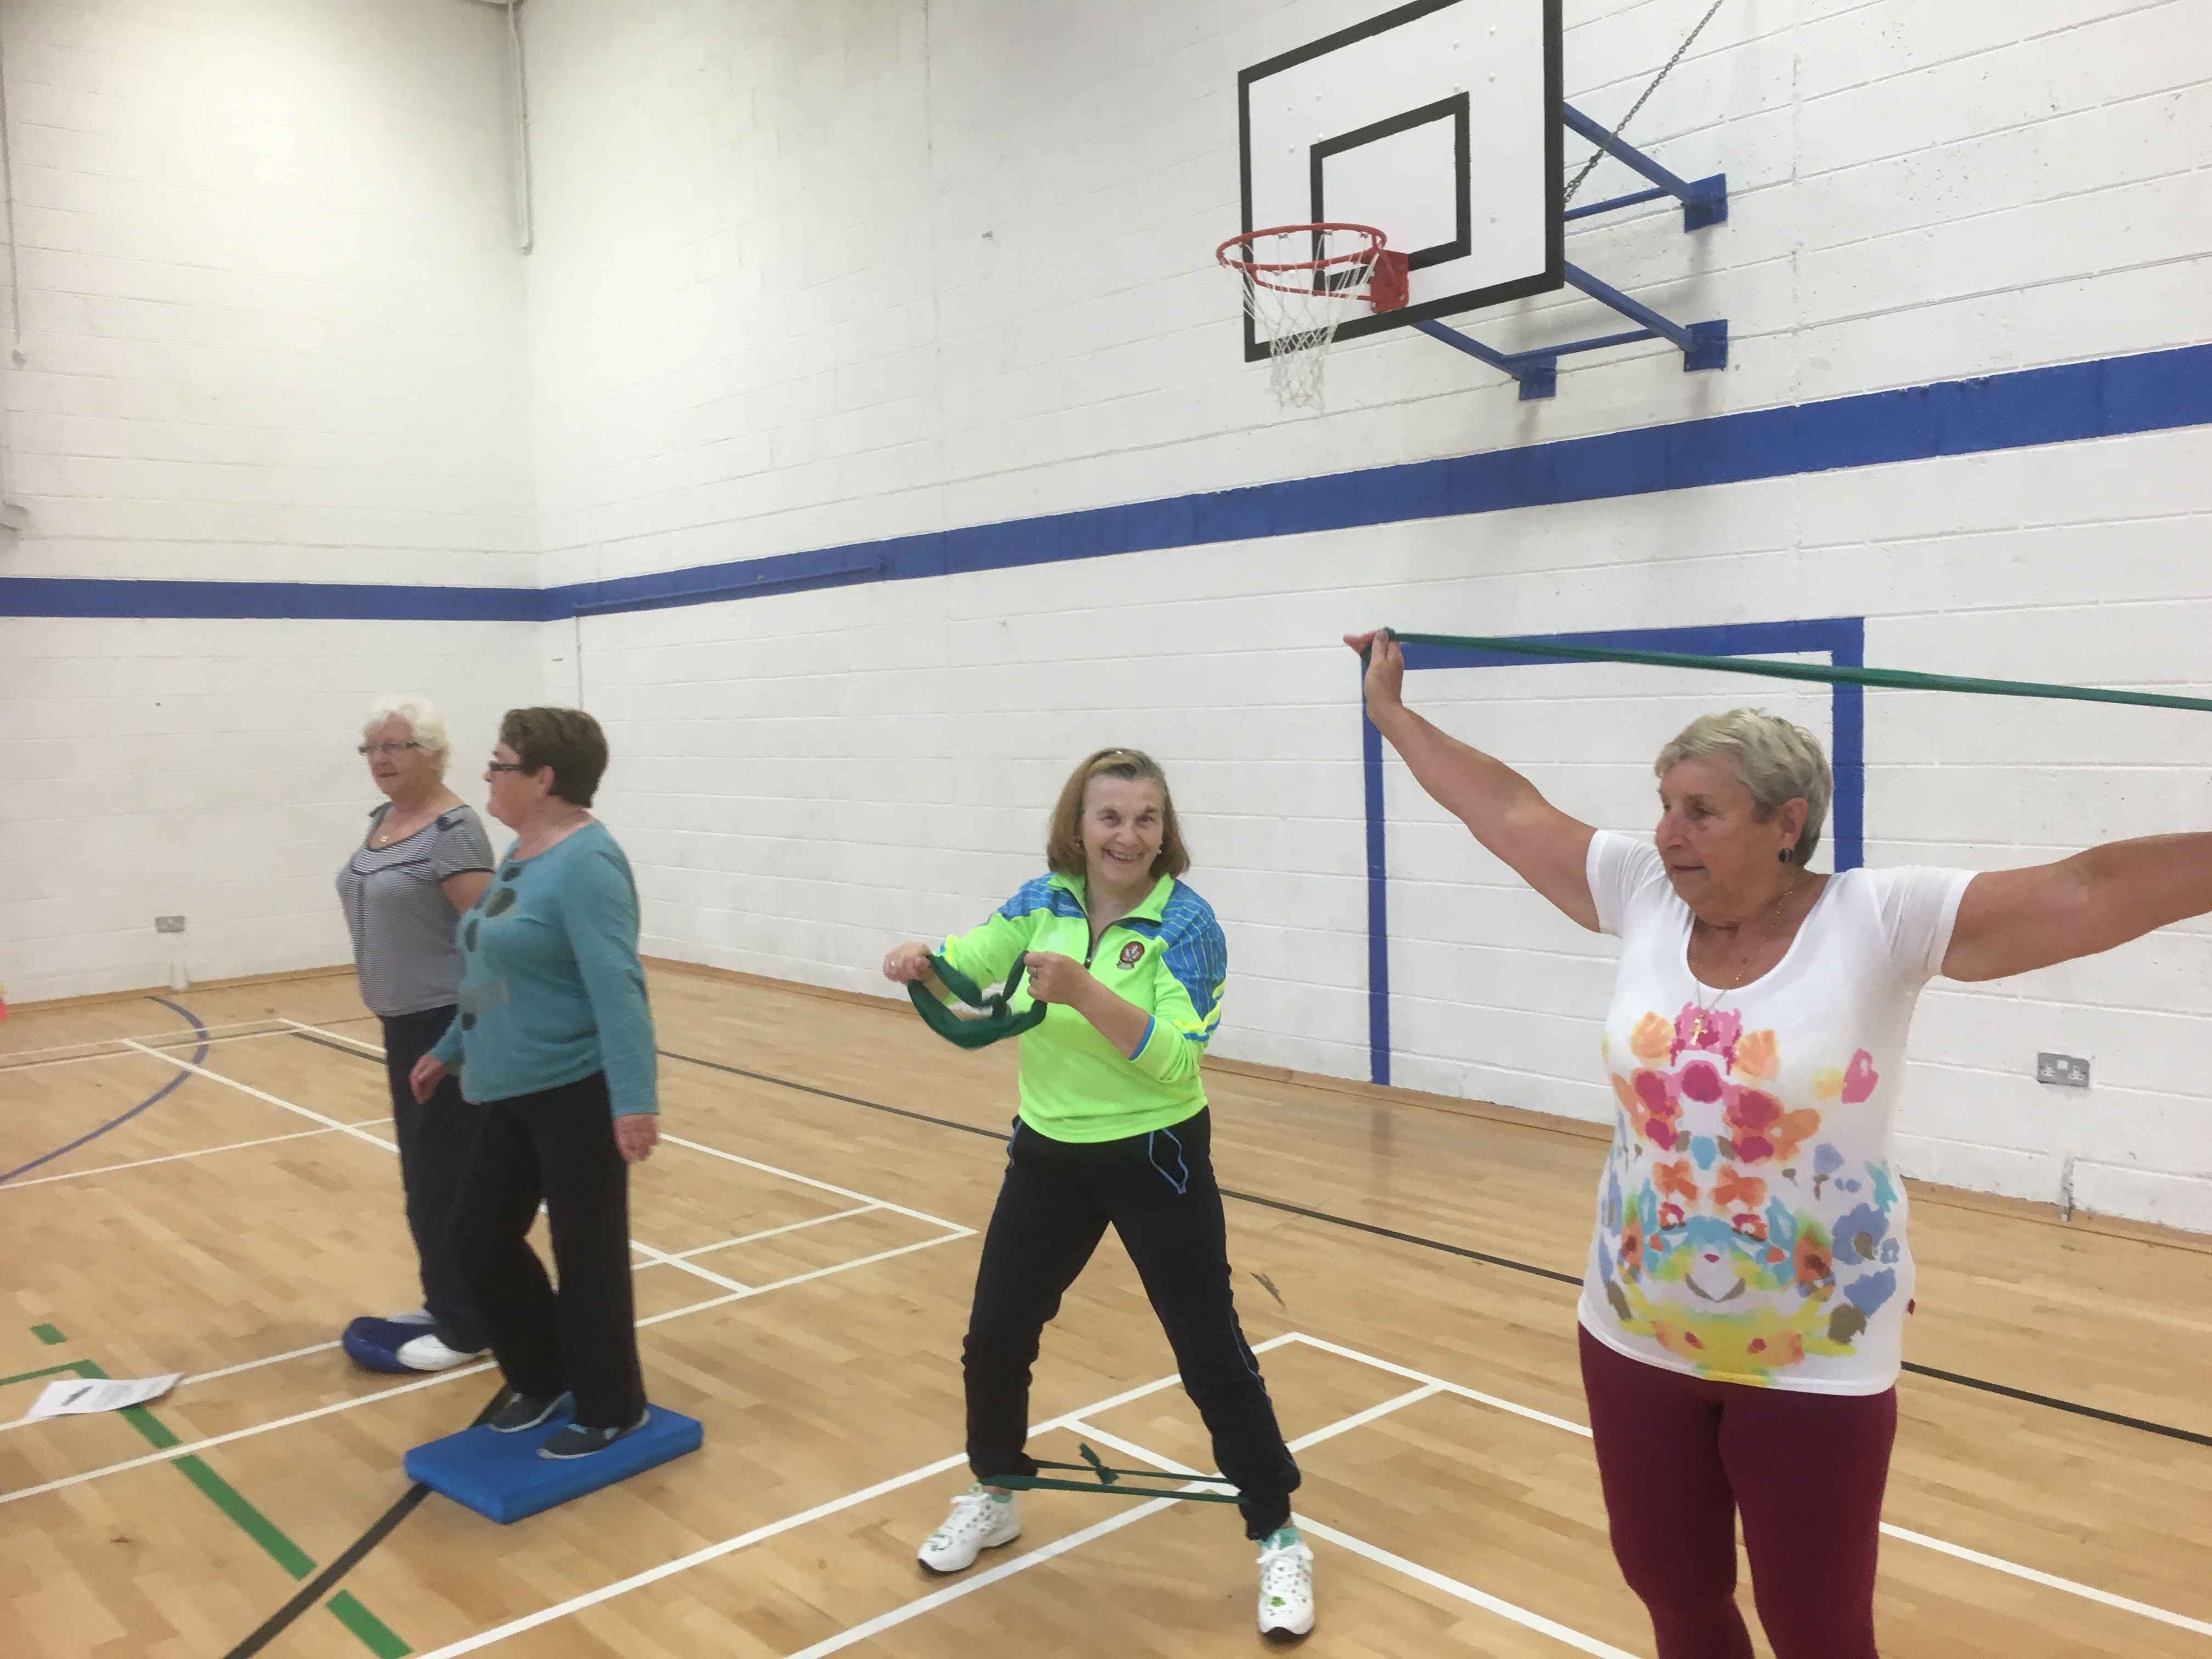 Over 50's Circuits | Cill Barra | Waterford Sports Partnership, Ireland